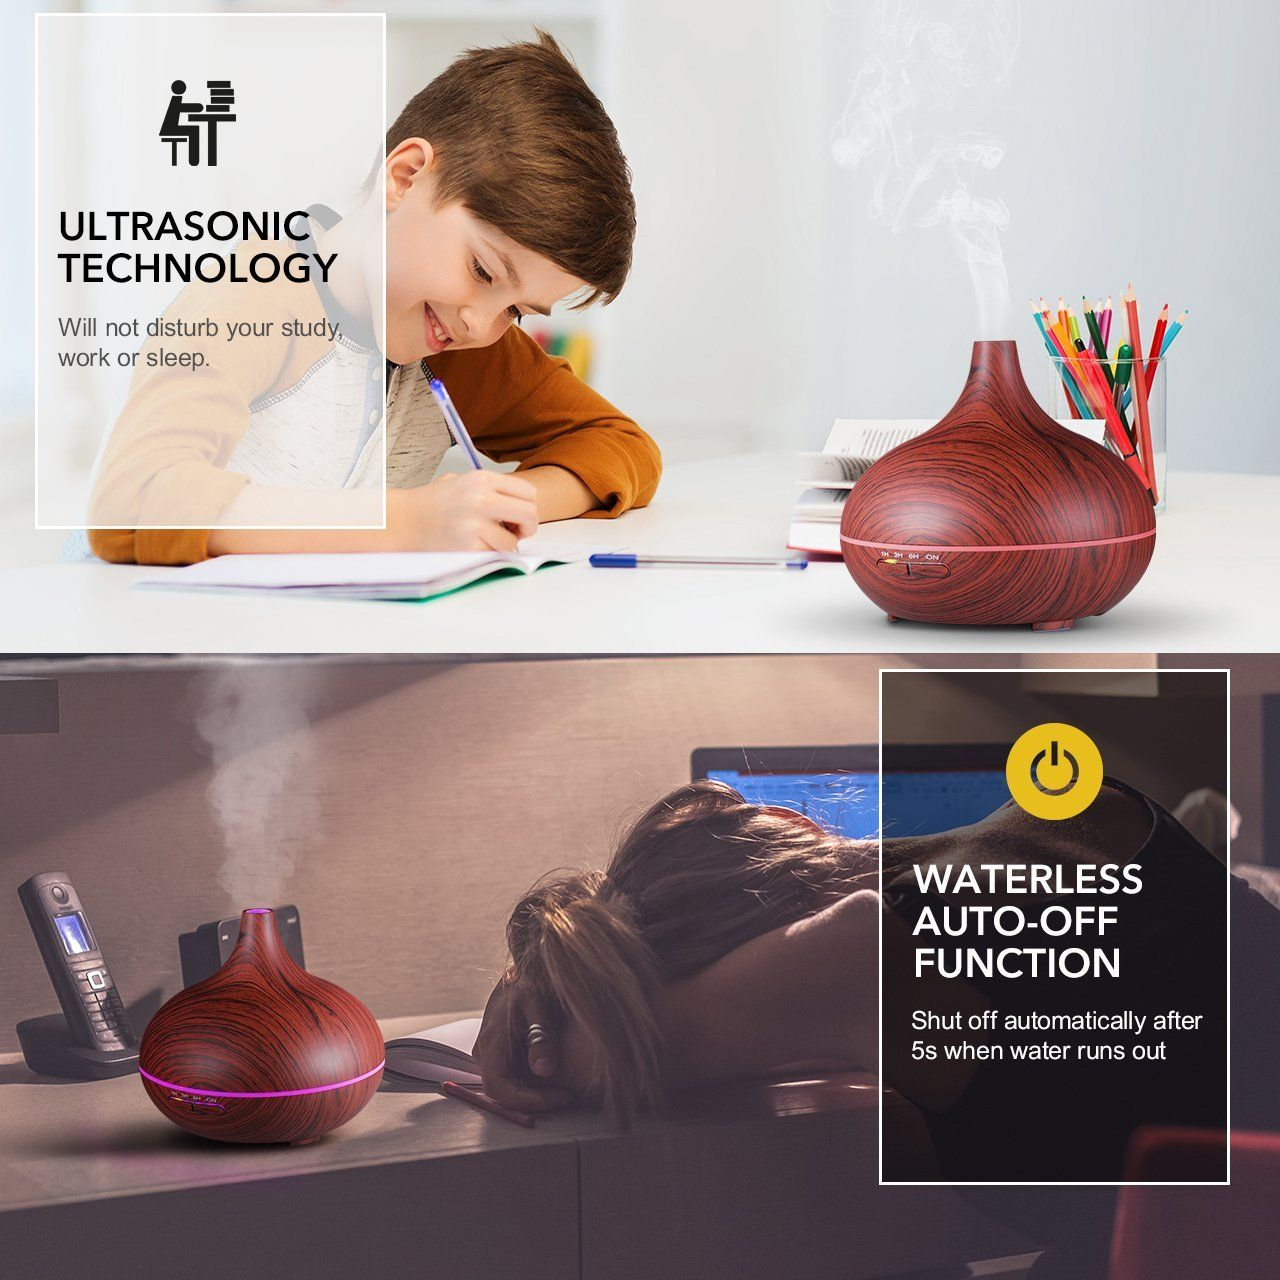 VicTsing 300ml Cool Mist Humidifier Ultrasonic Aroma Essential Oil Diffuser for Office Home Bedroom Living Room Study Yoga Spa Wood Grain